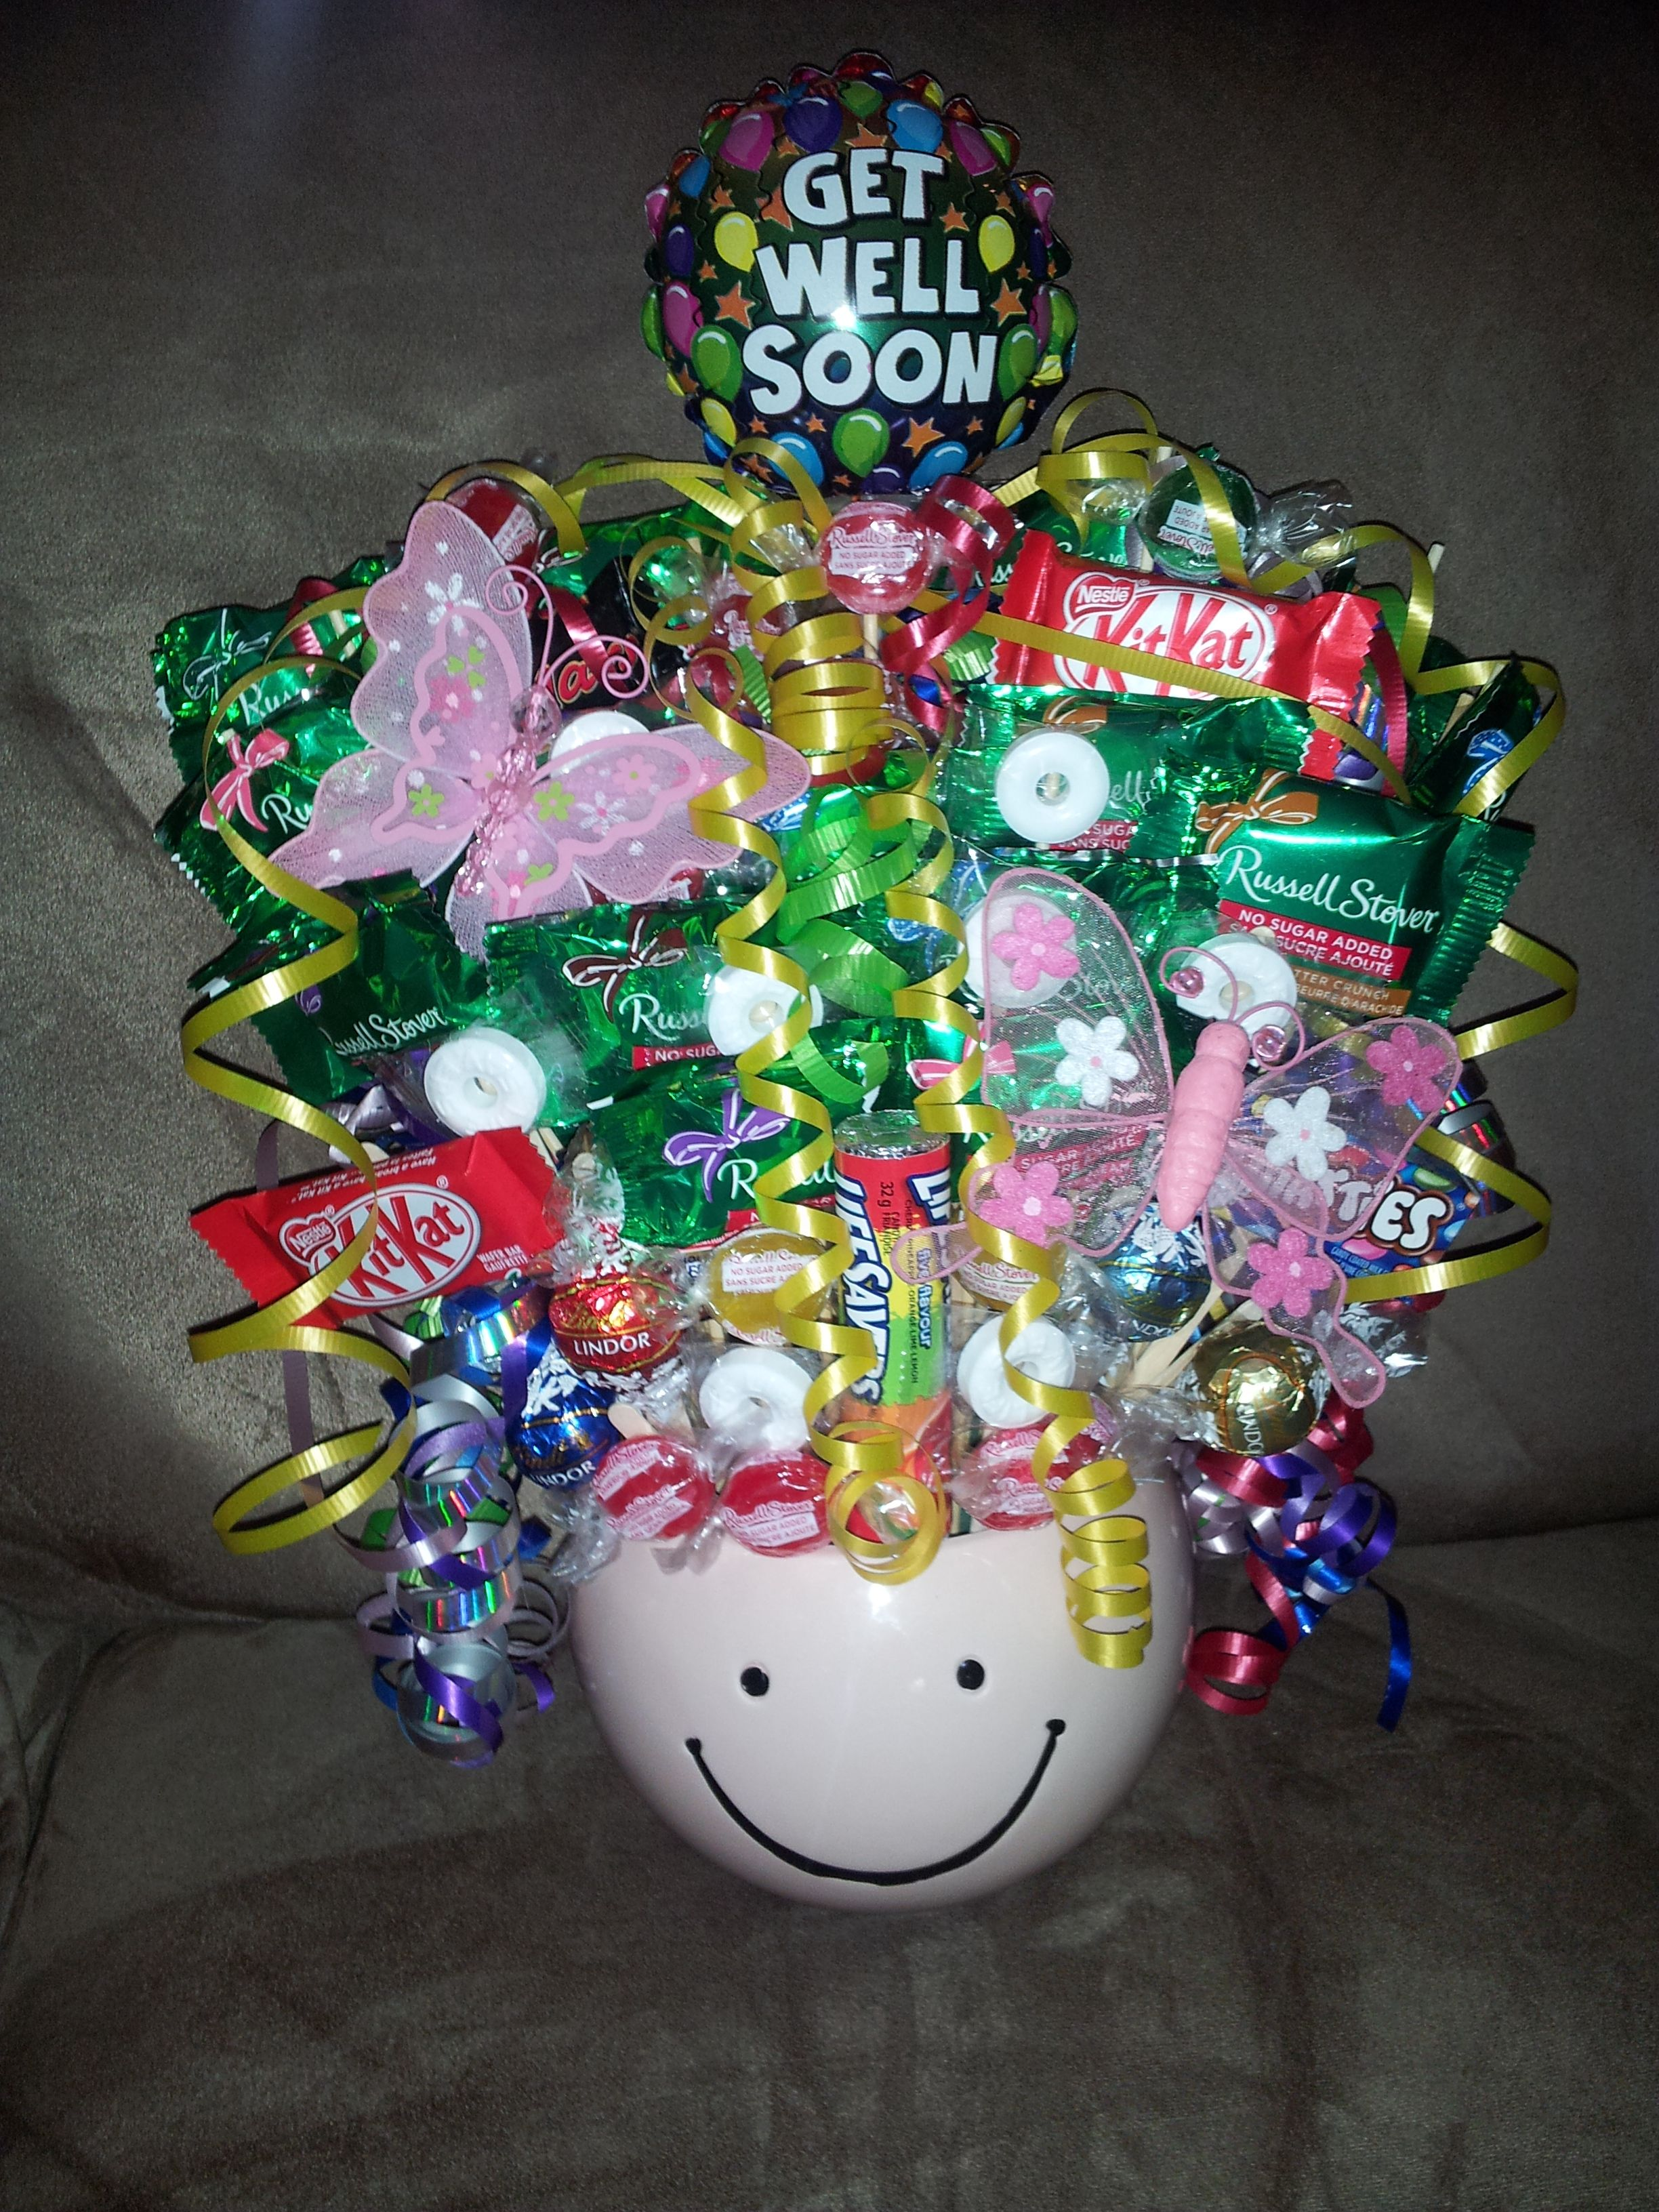 Get well soon candy bouquet featuring sugar free candies get well soon candy bouquet featuring sugar free candies facebook negle Gallery